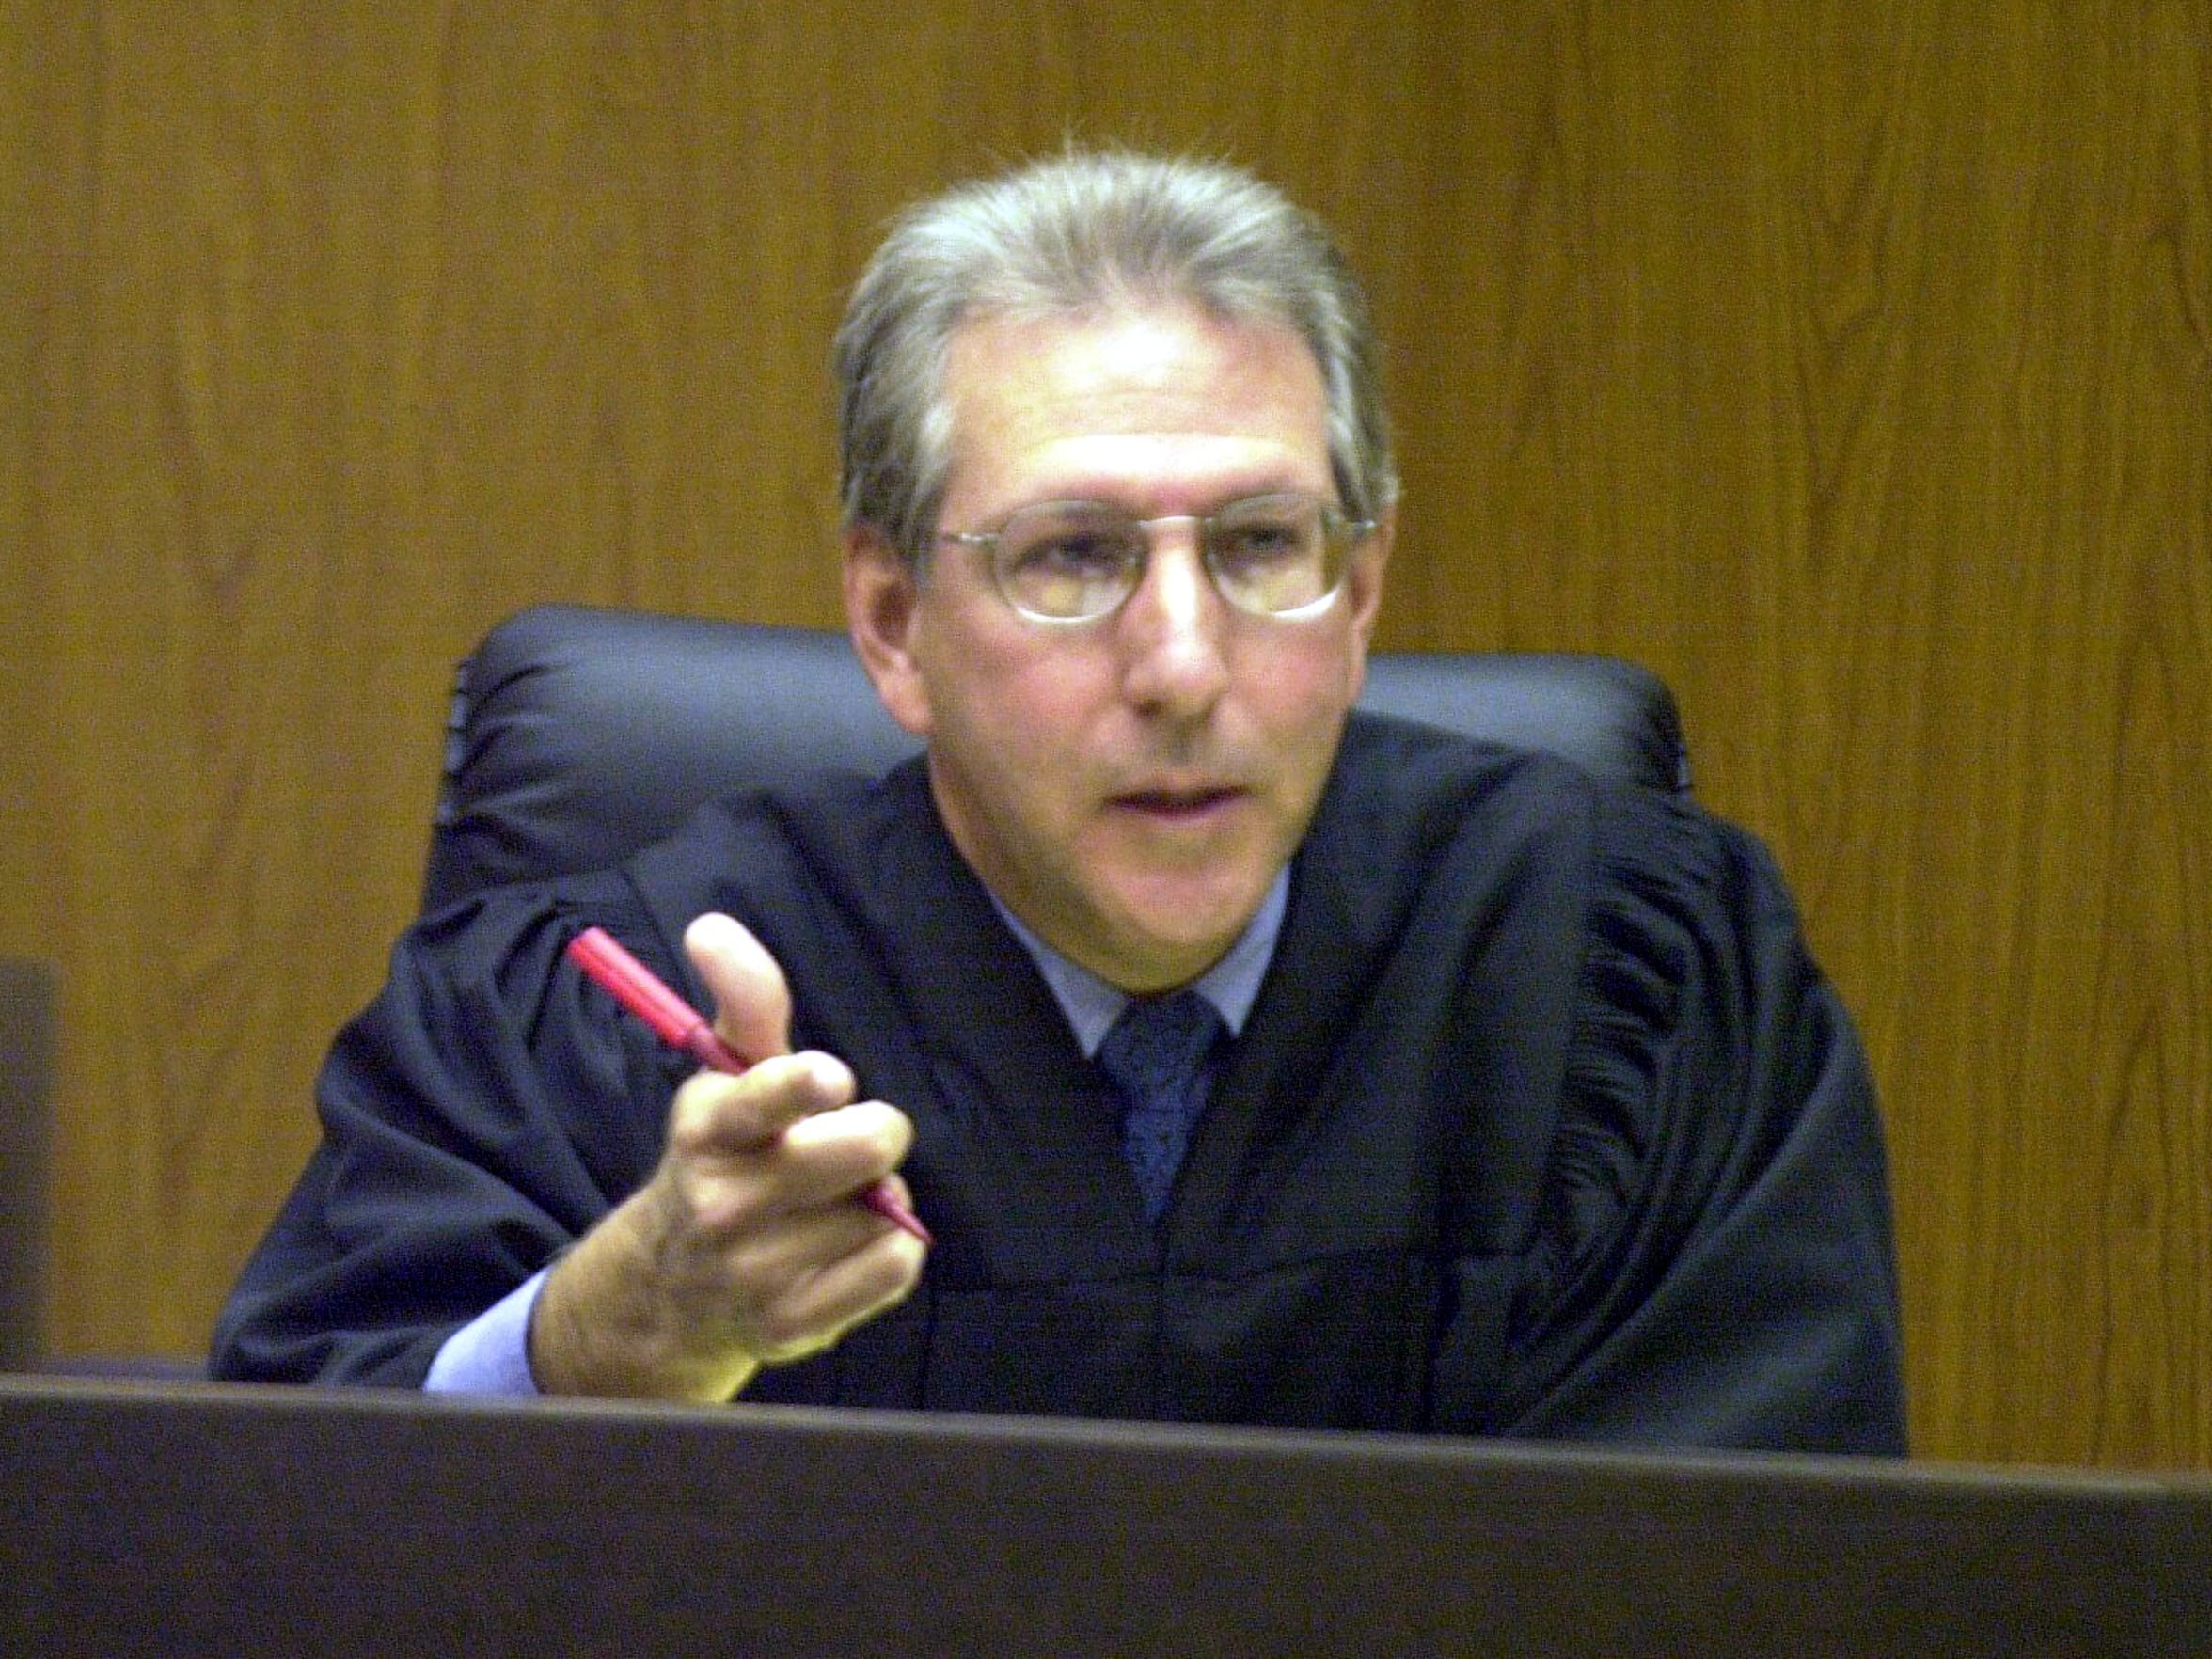 Maricopa County Superior Court Judge Ronald Reinstein